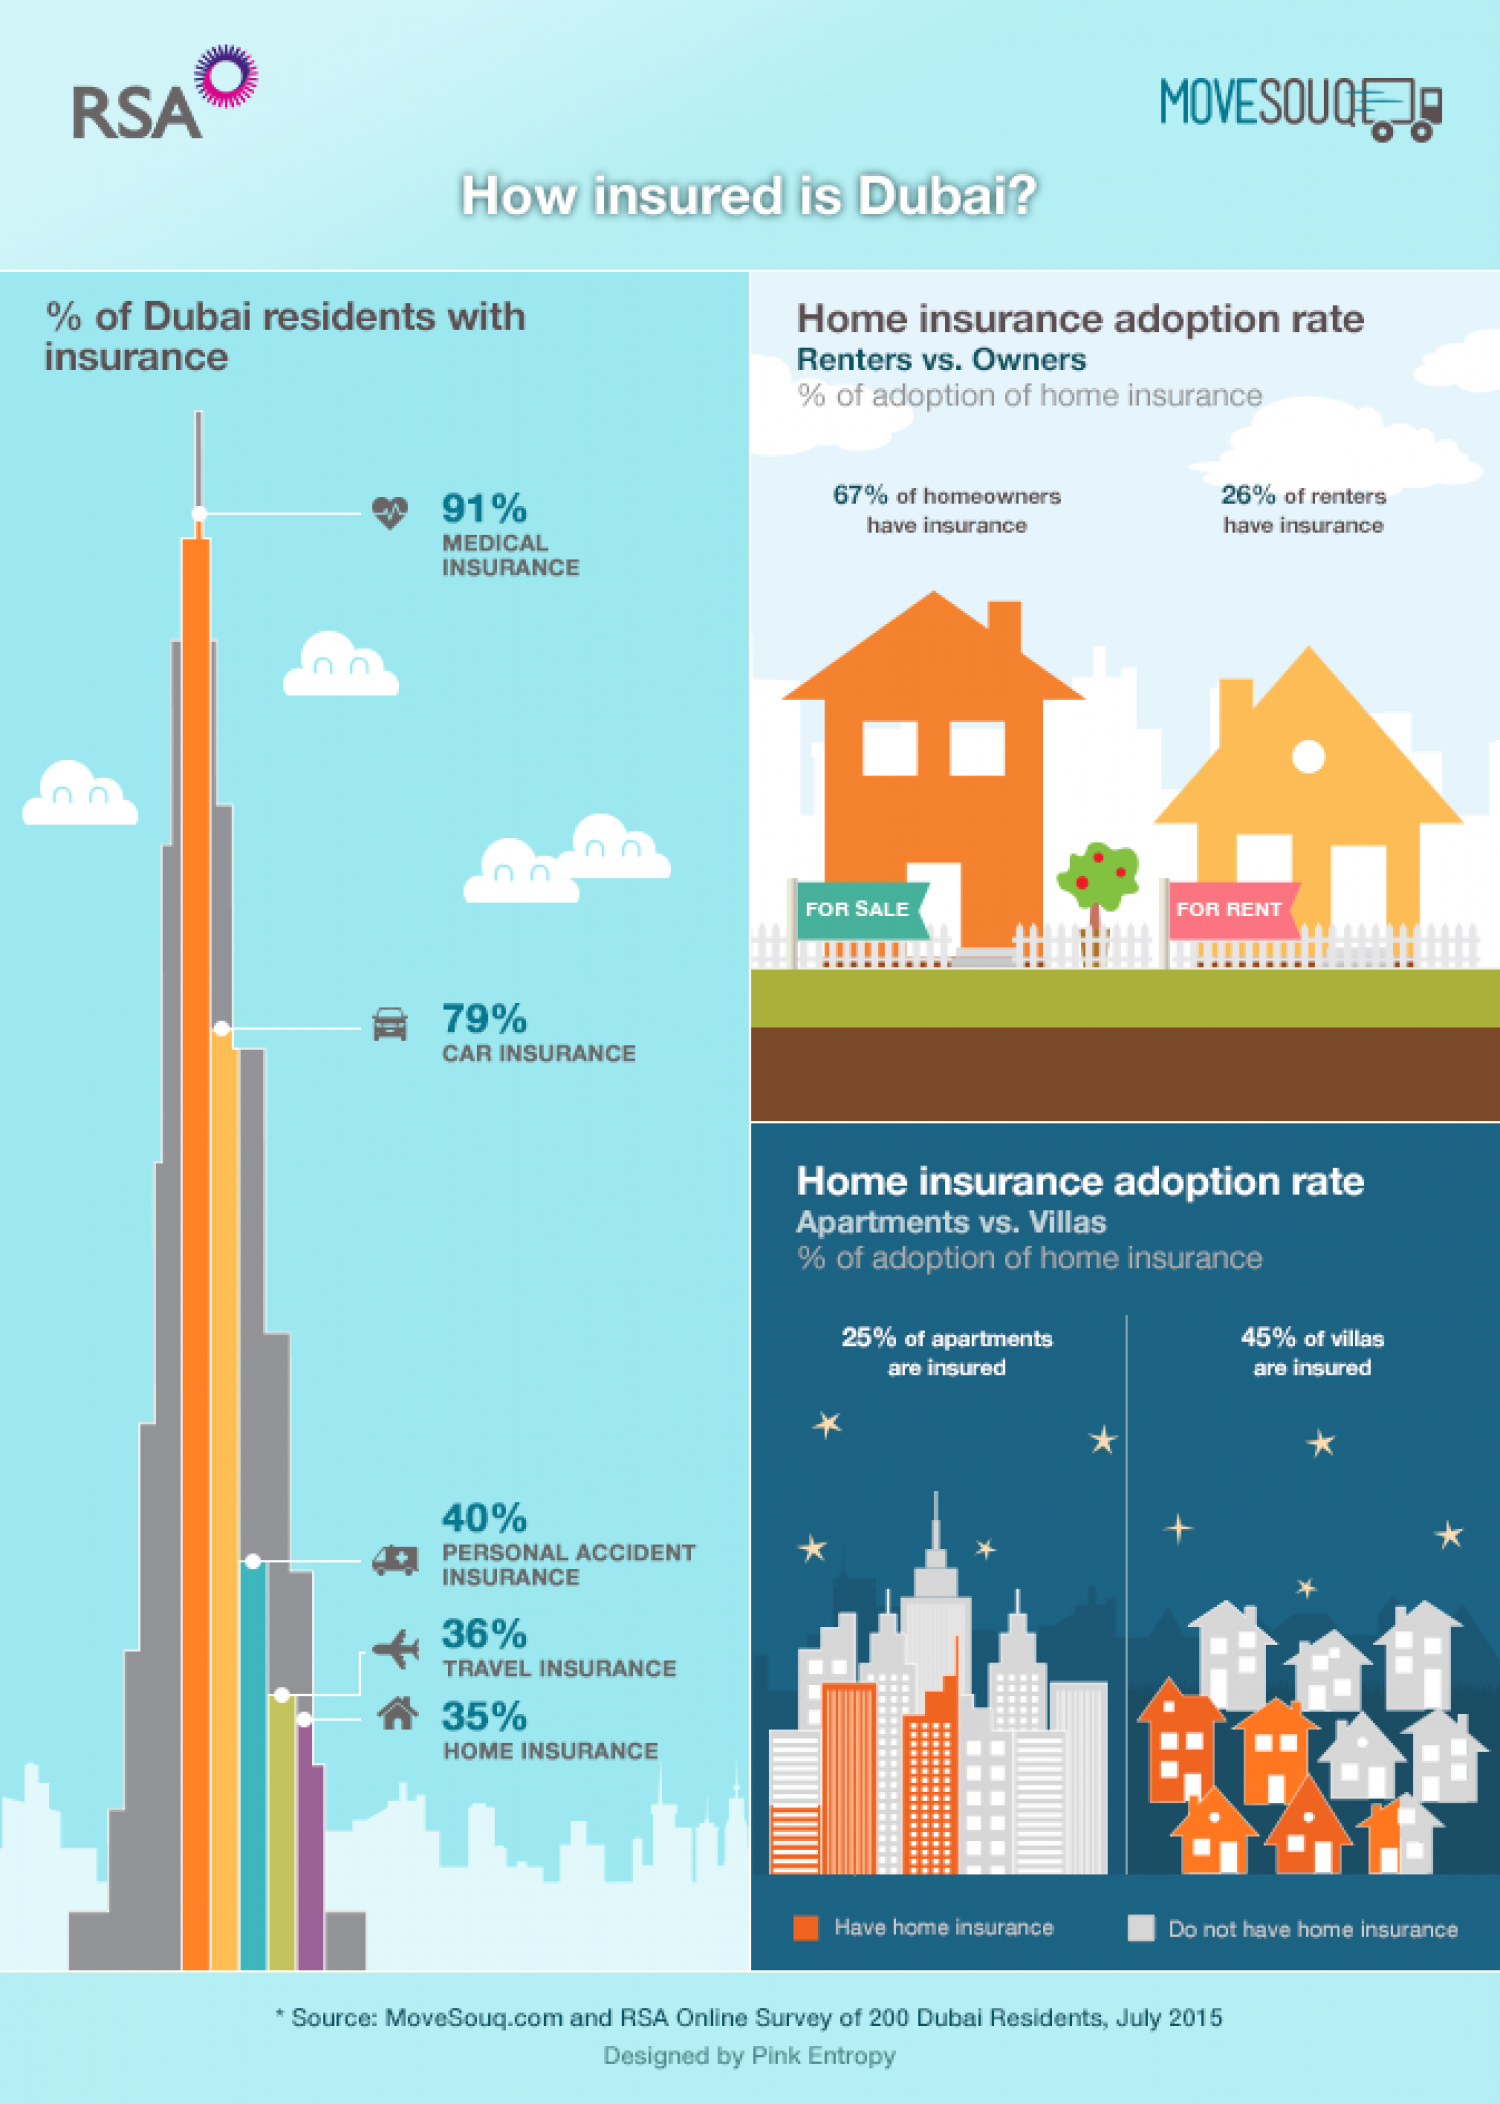 61% of Dubai residents' homes are uninsured - Survey by MoveSouq.com and RSA Infographic